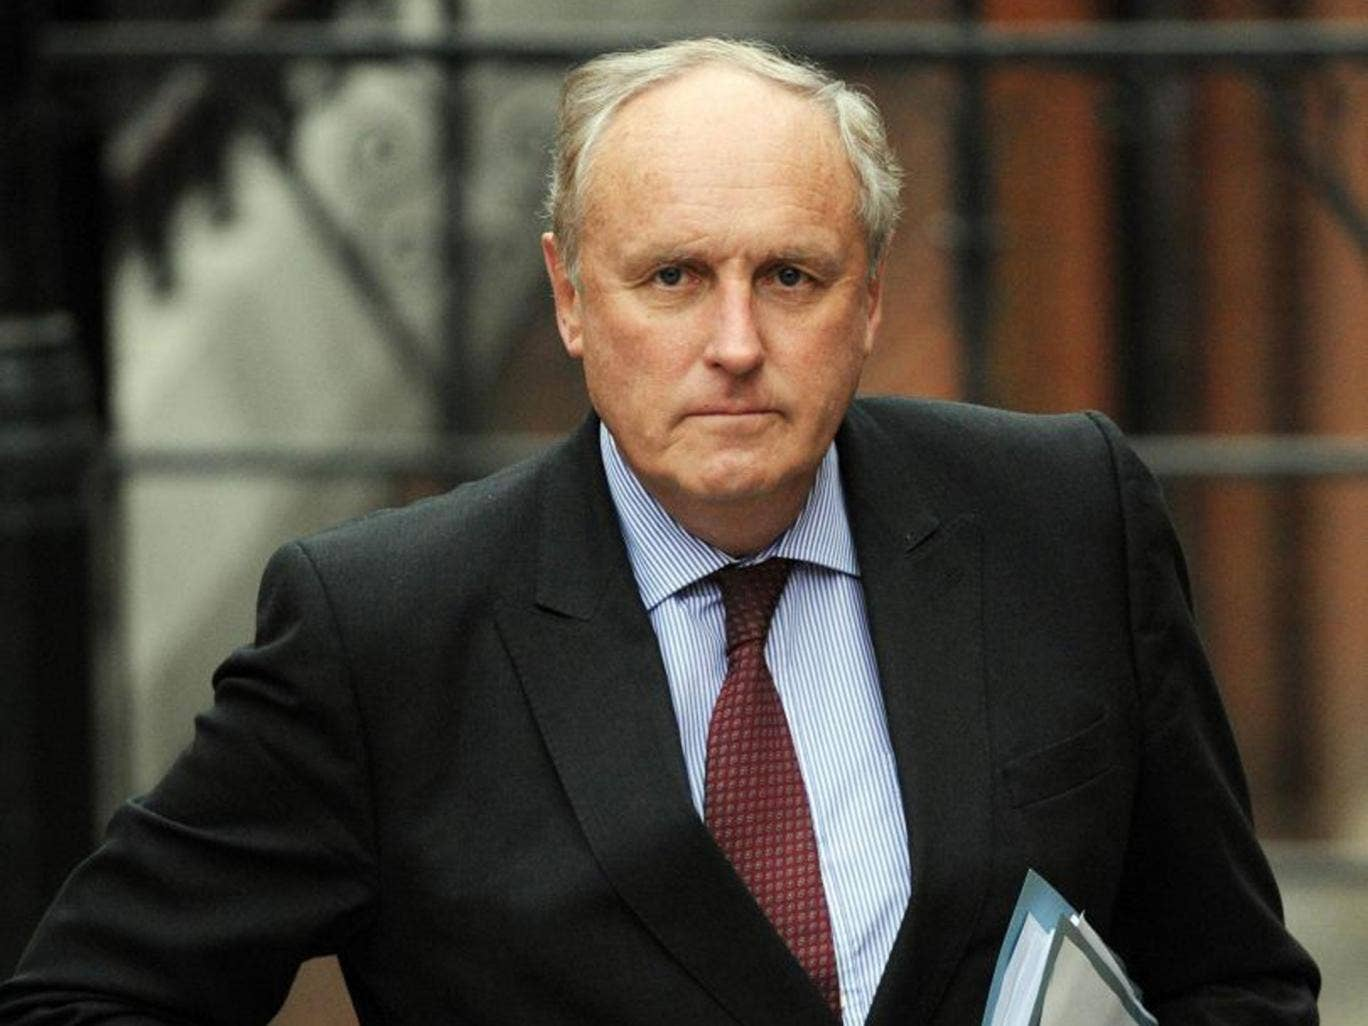 The Daily Mail editor-in-chief, Paul Dacre